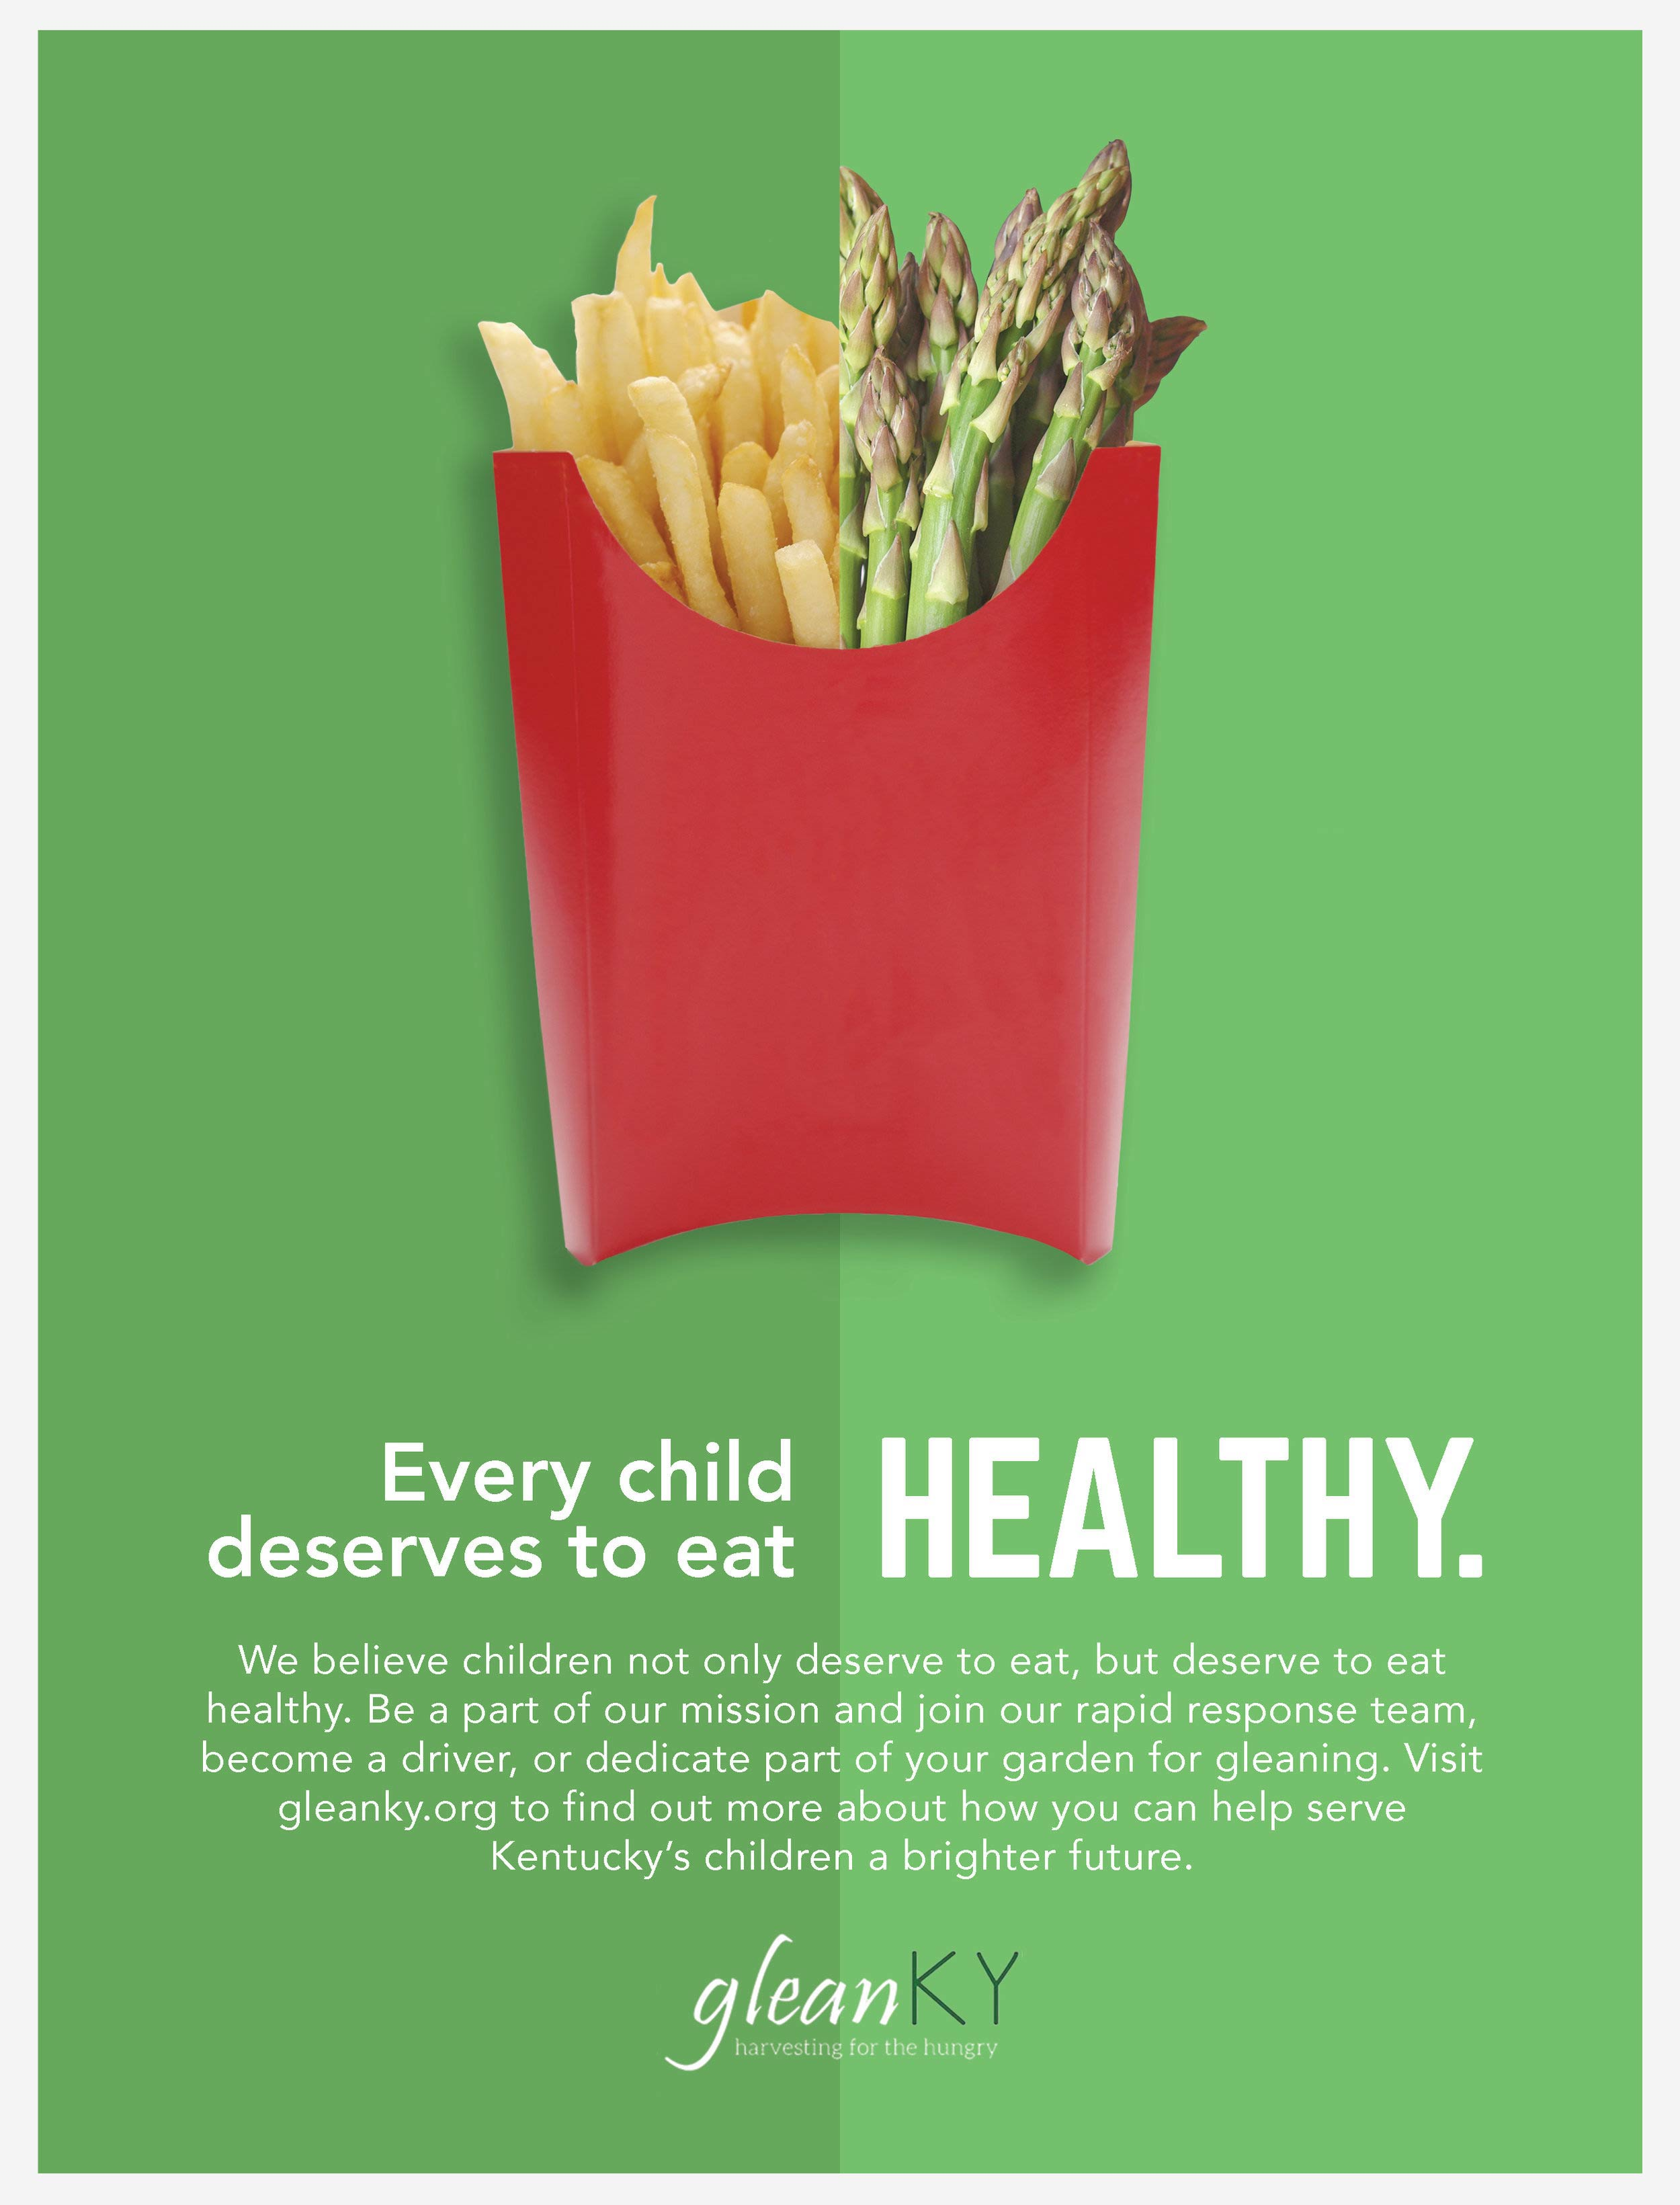 - Children don't just deserve to eat; they deserve to eat HEALTHY. This campaign will not only show our audience what GleanKY is/does, but shows them that they can provide children in Kentucky with a brighter future.